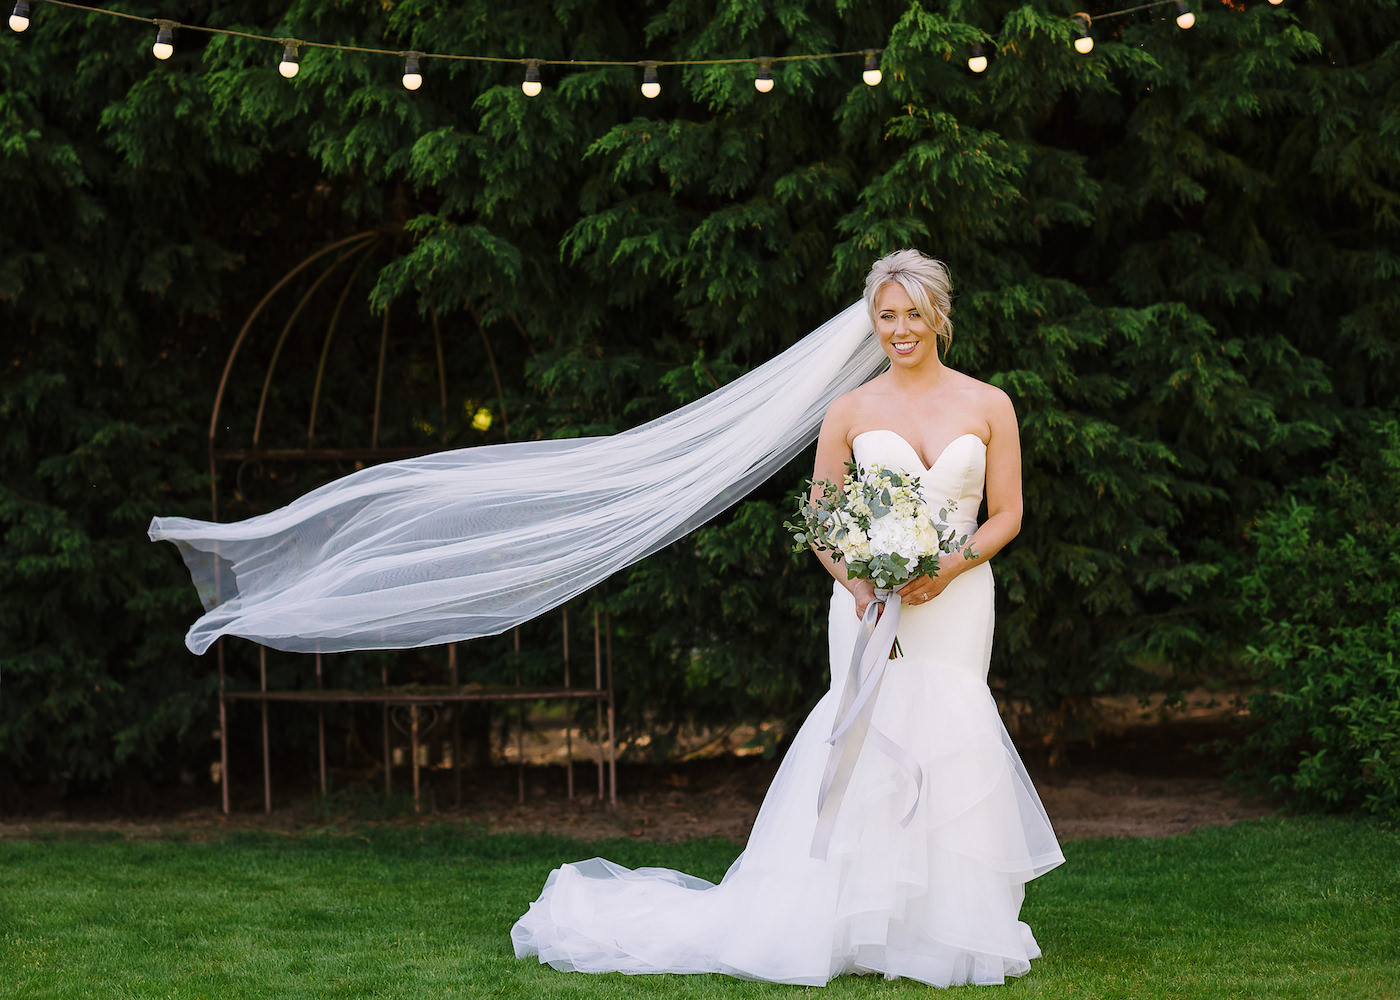 Bride's long white veil lifted by wind at Russets Country House